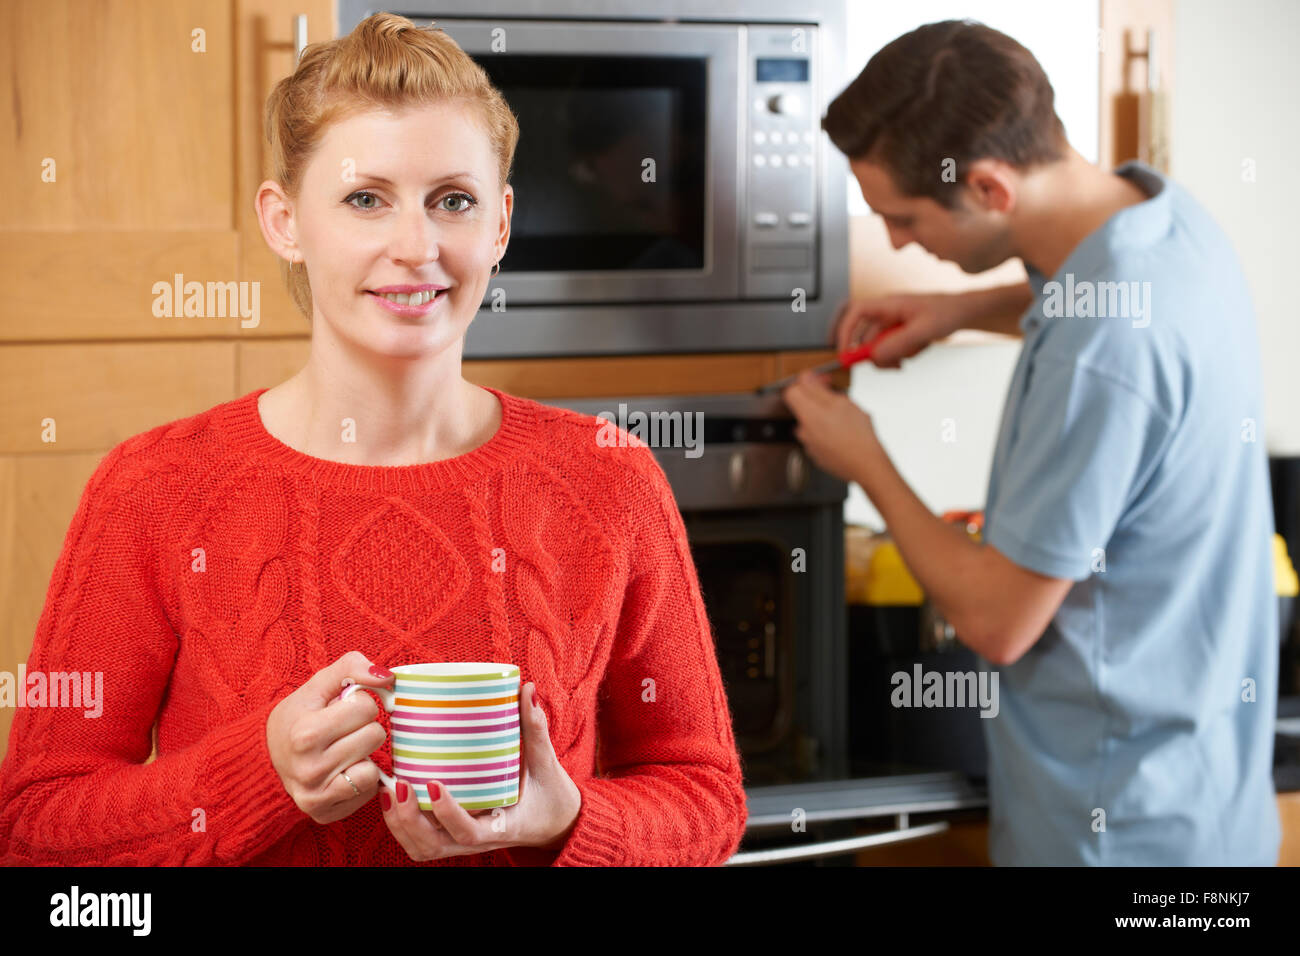 Woman Smiling As Cooker Is Repaired - Stock Image